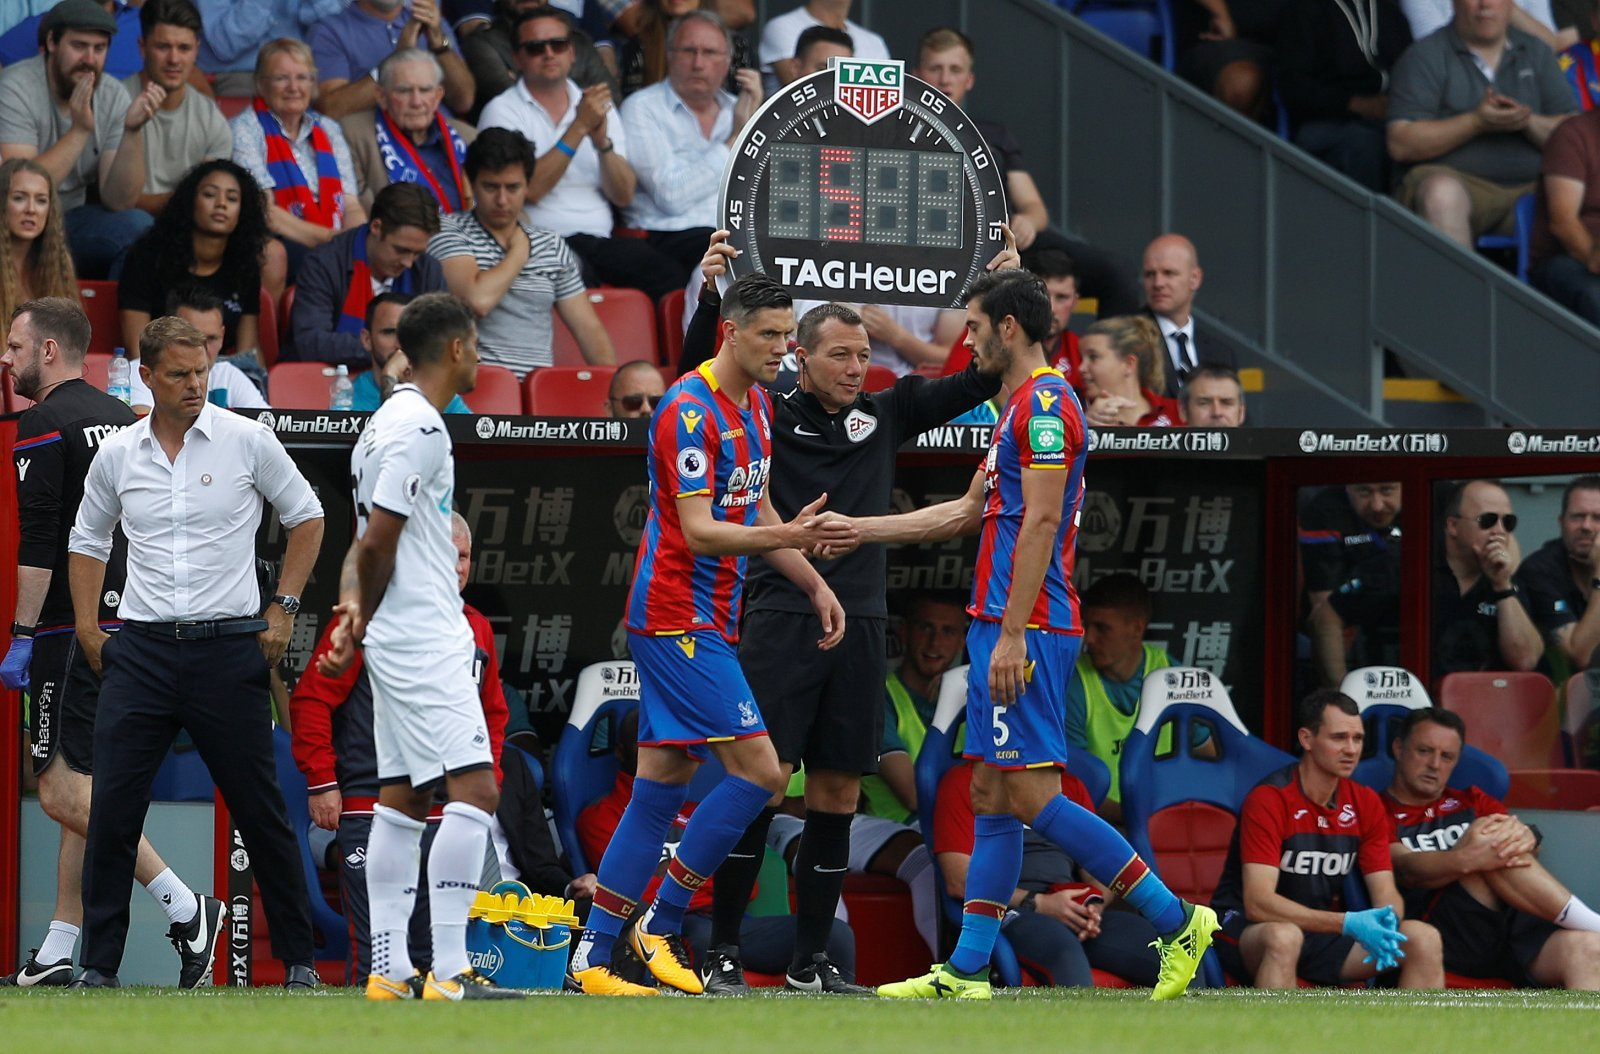 Crystal Palace: Fans call for Martin Kelly over James Tomkins